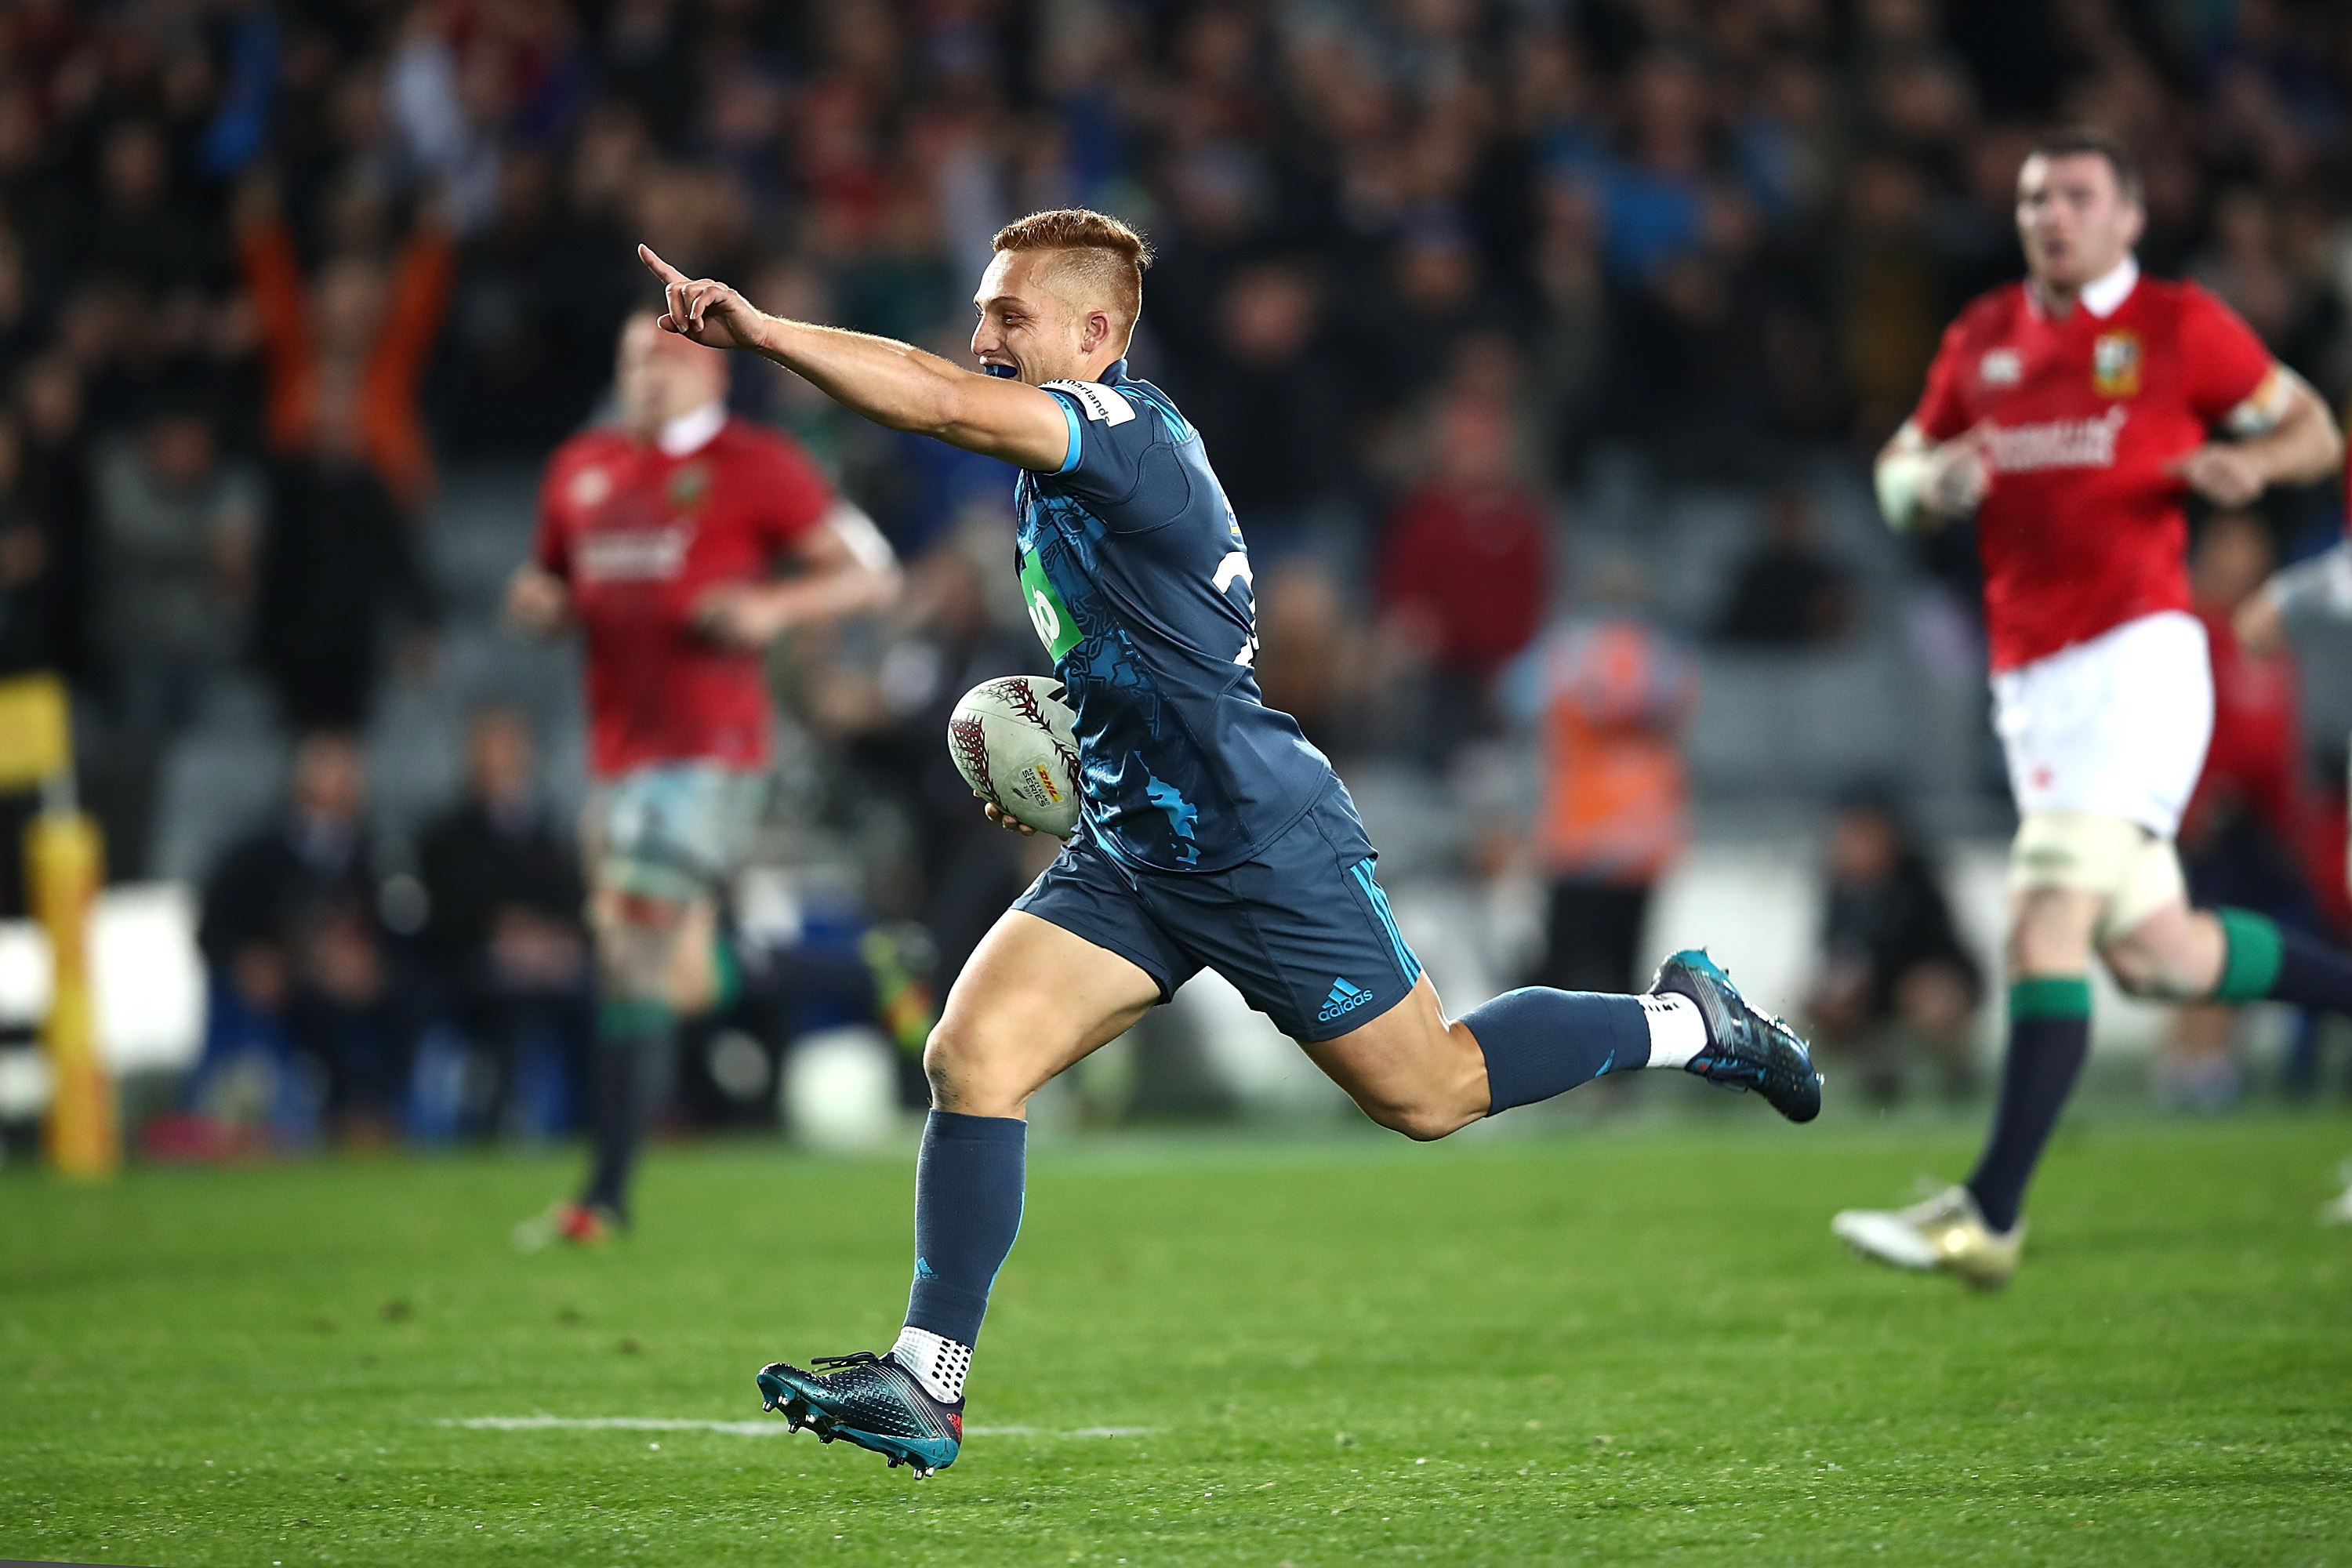 Ihaia West of the Blues celebates as he runs in to score the clinching try for the Blues against the Lions.